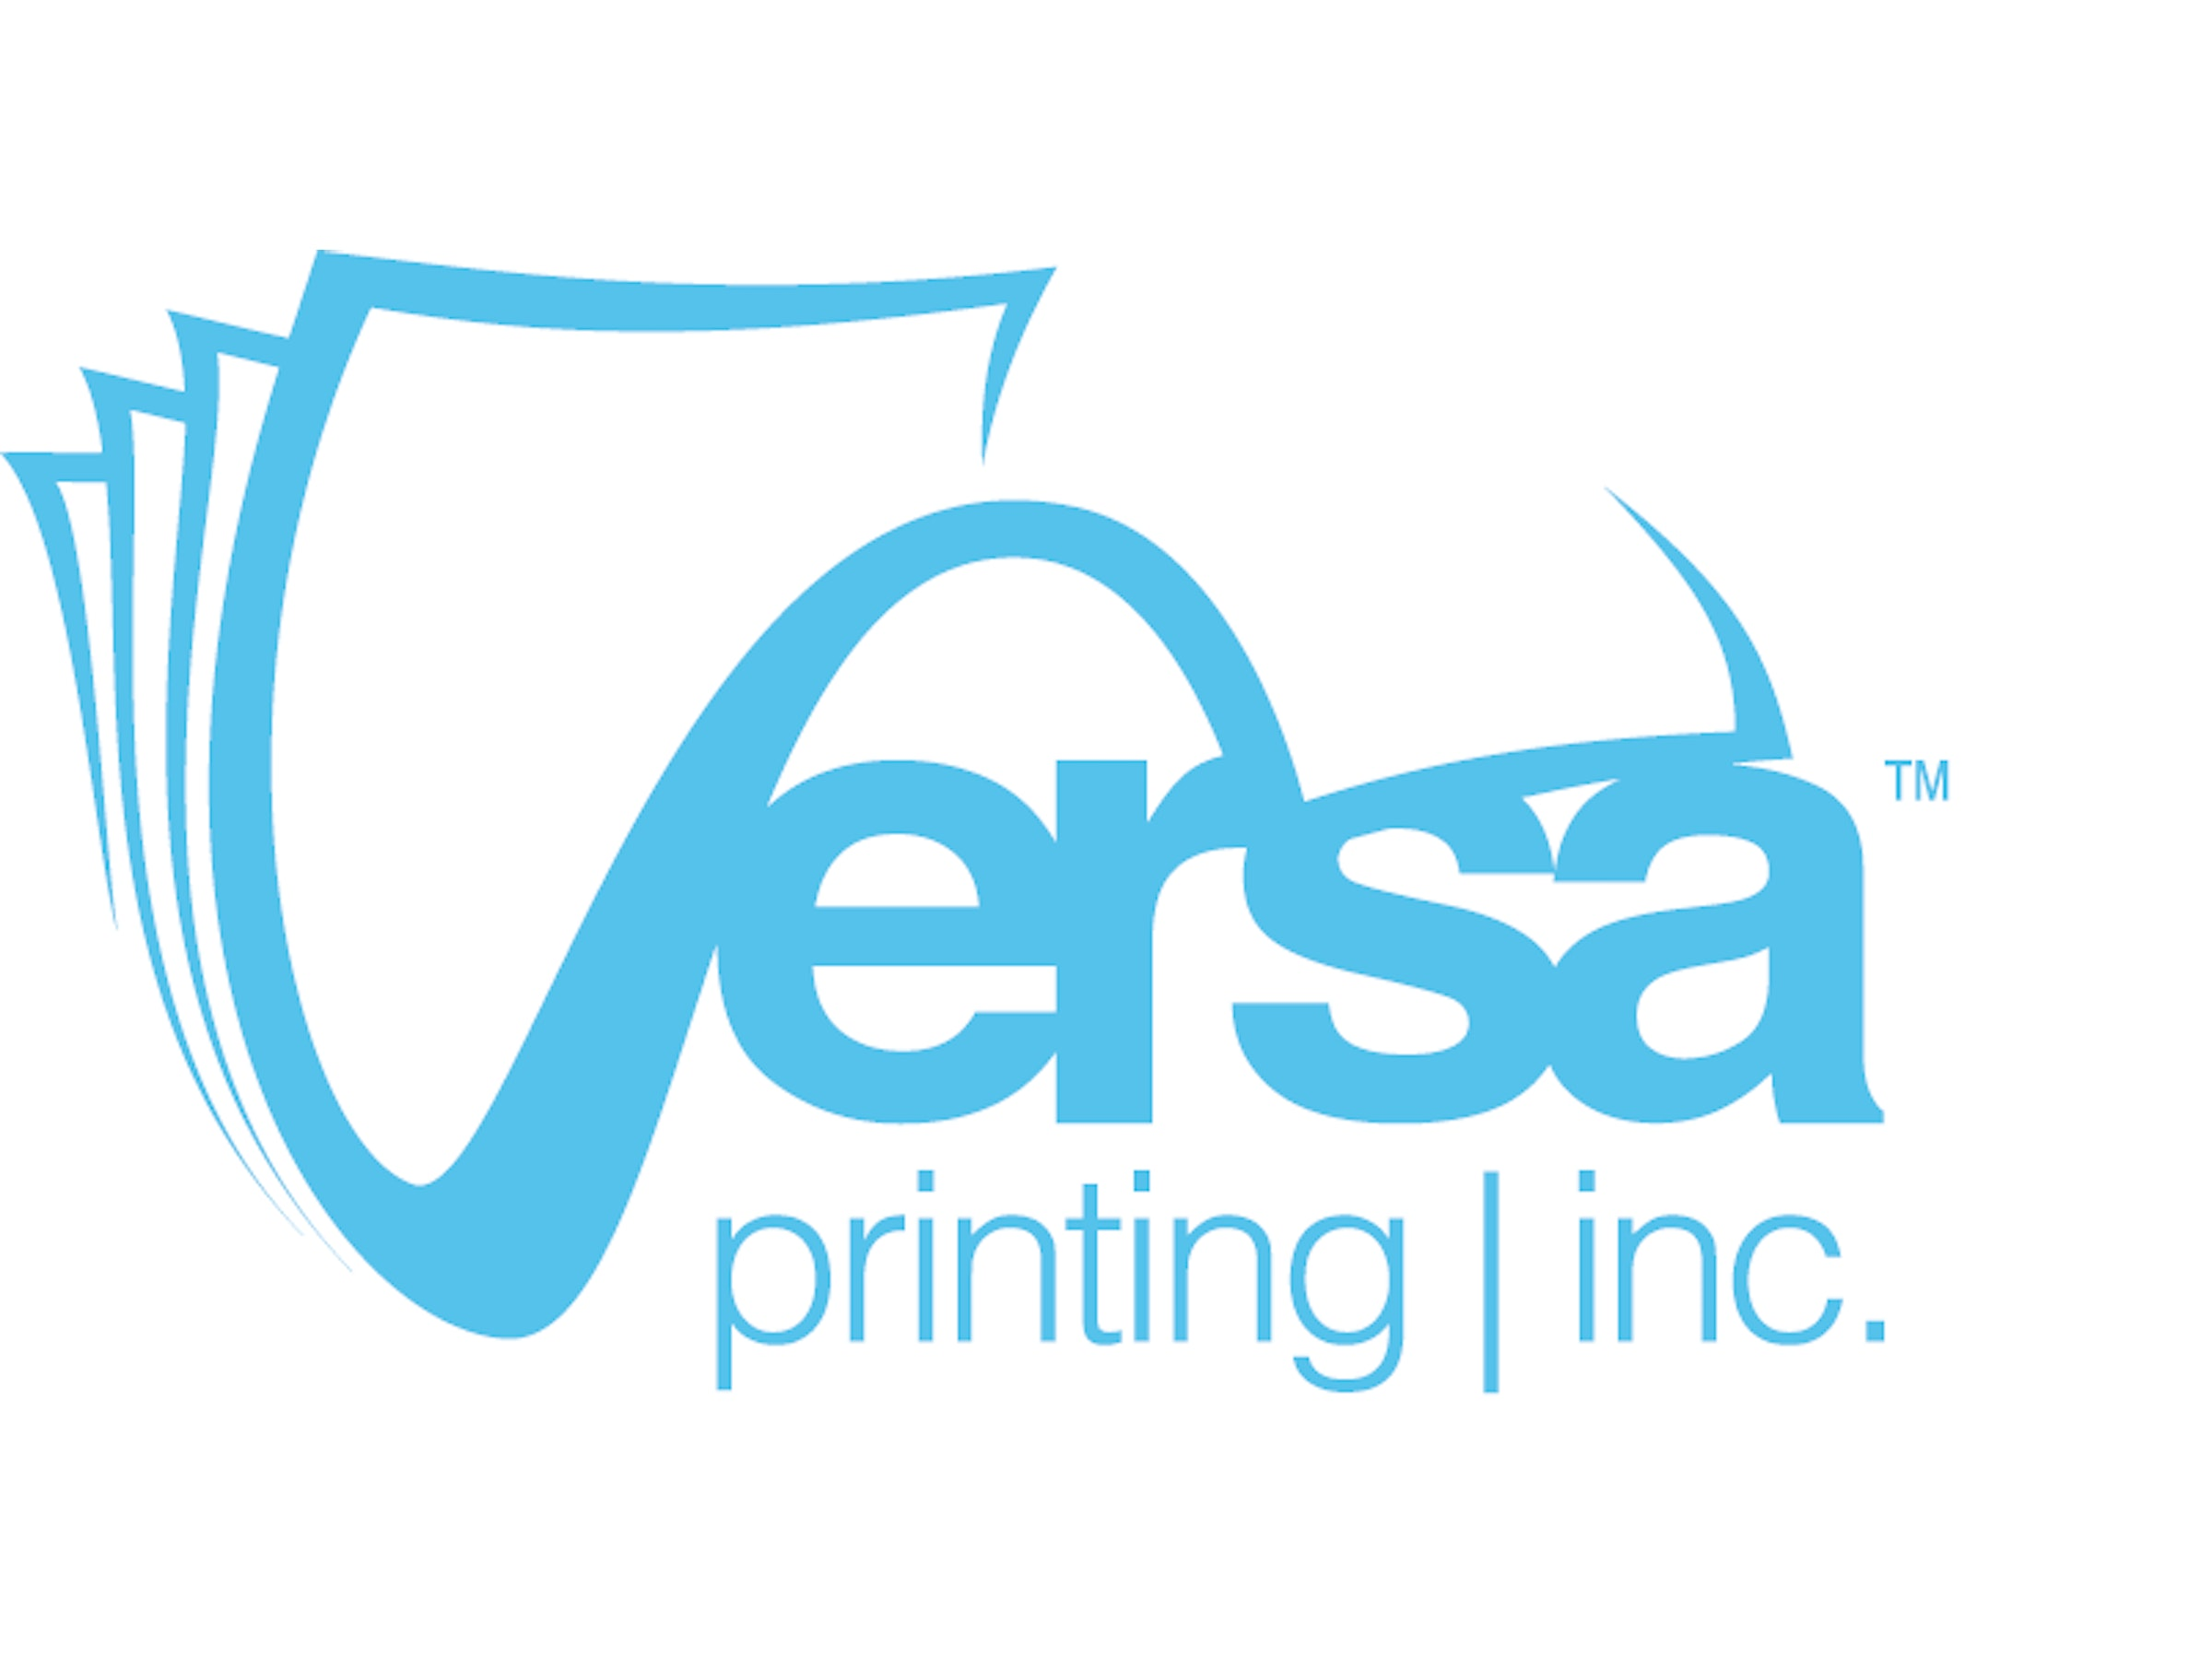 Versa Printing in Beyond Dallas